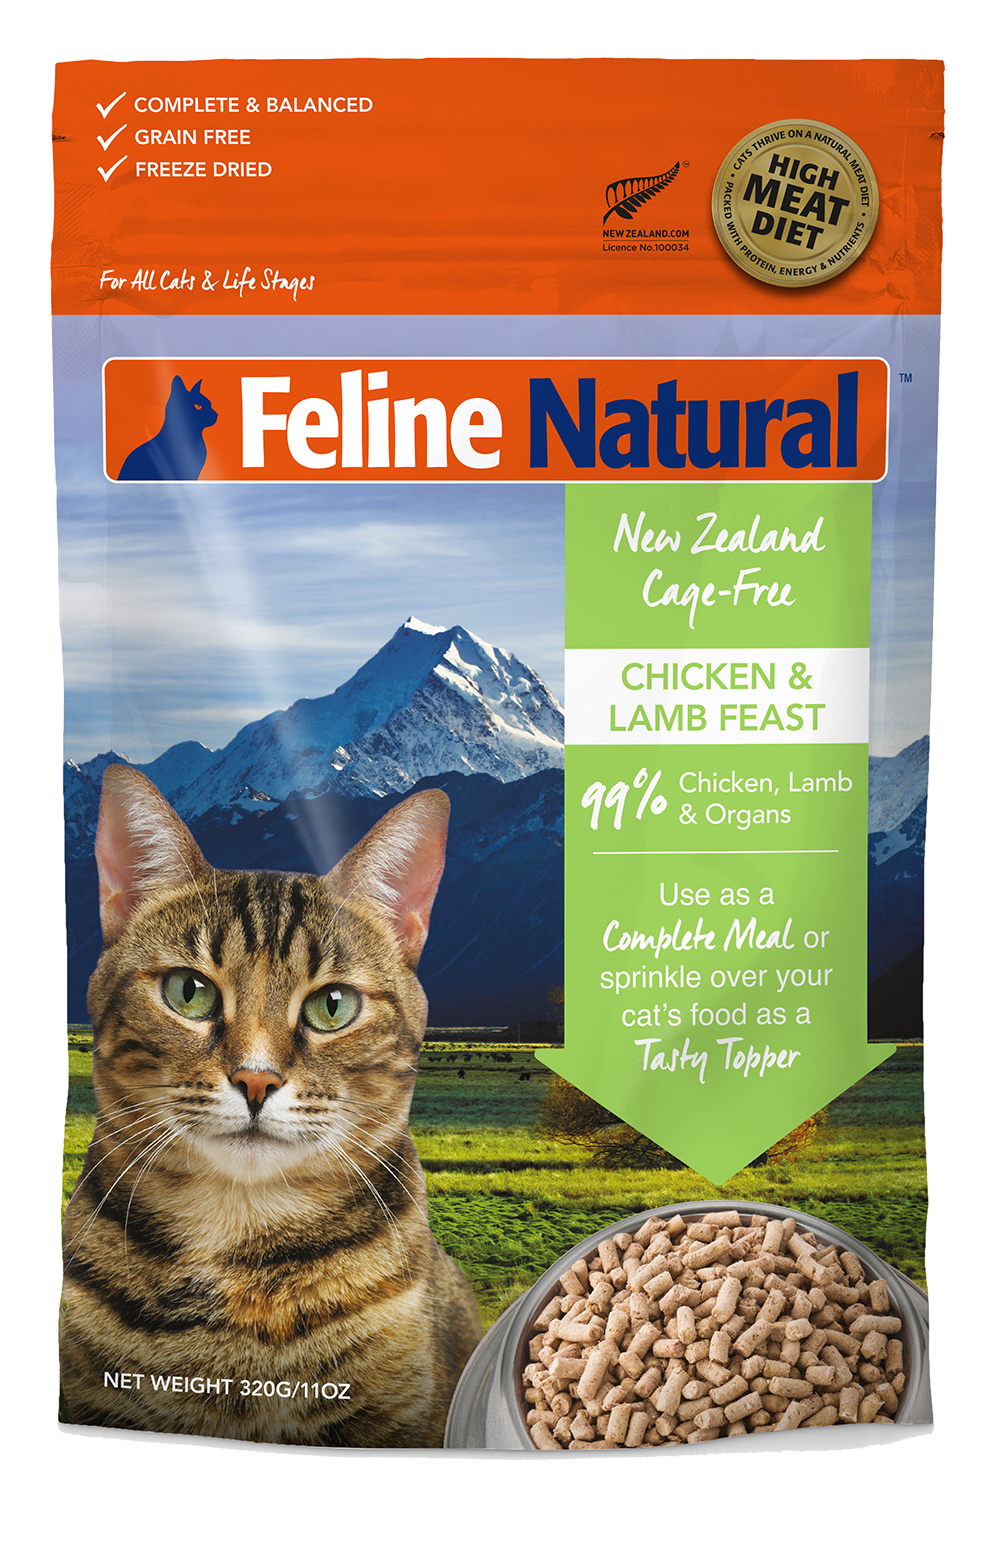 Feline Natural Freeze Dried Chicken & Lamb Feast 320g